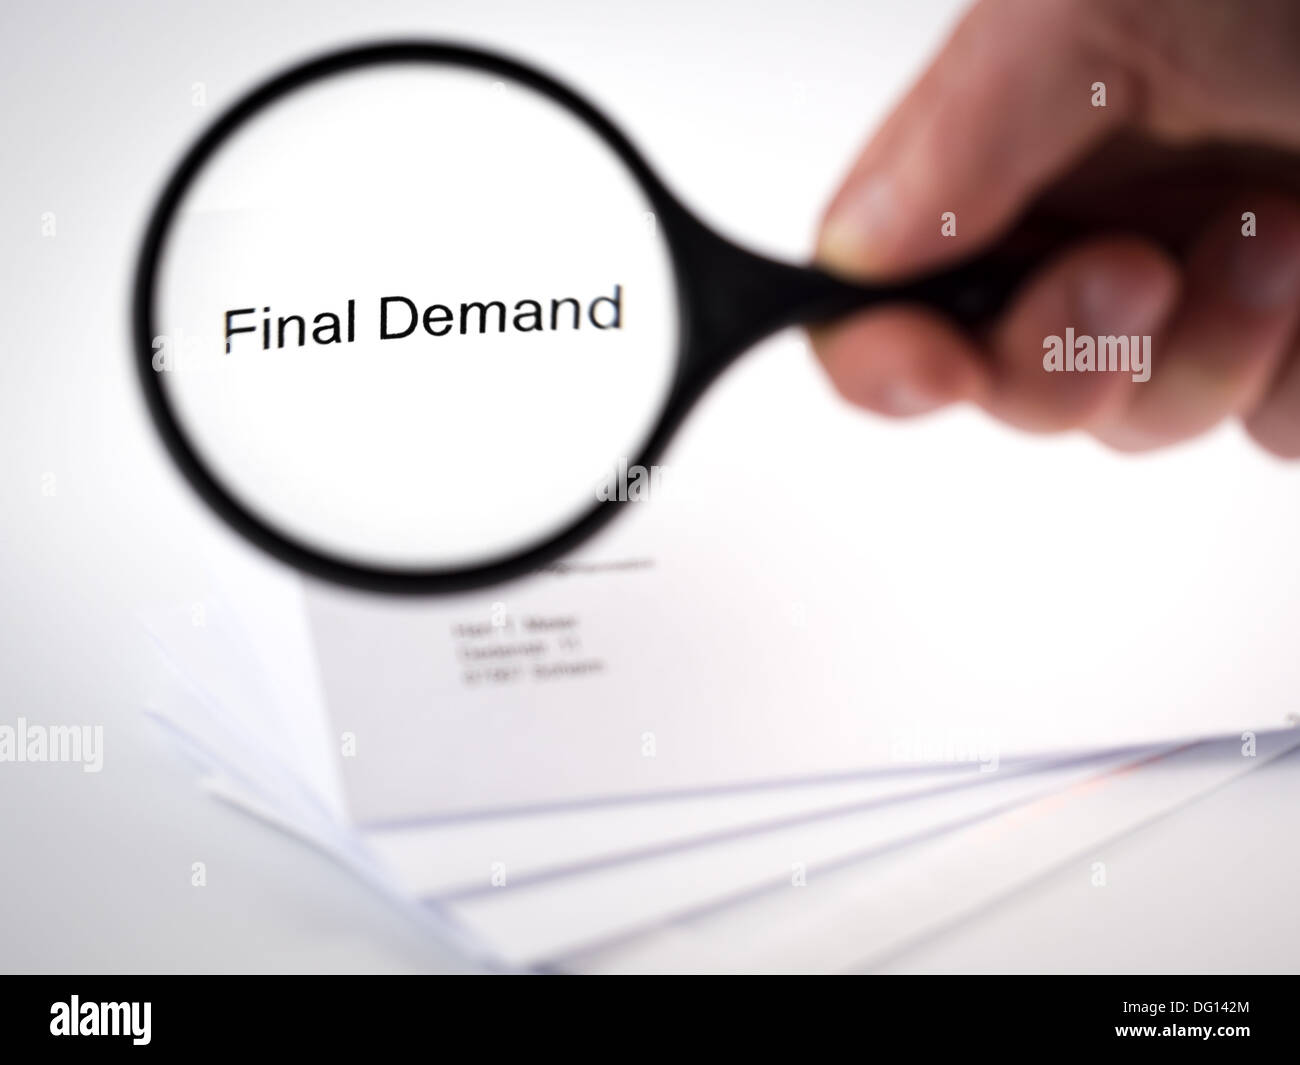 Cover letter with the words Final Demand in the letterhead - Stock Image